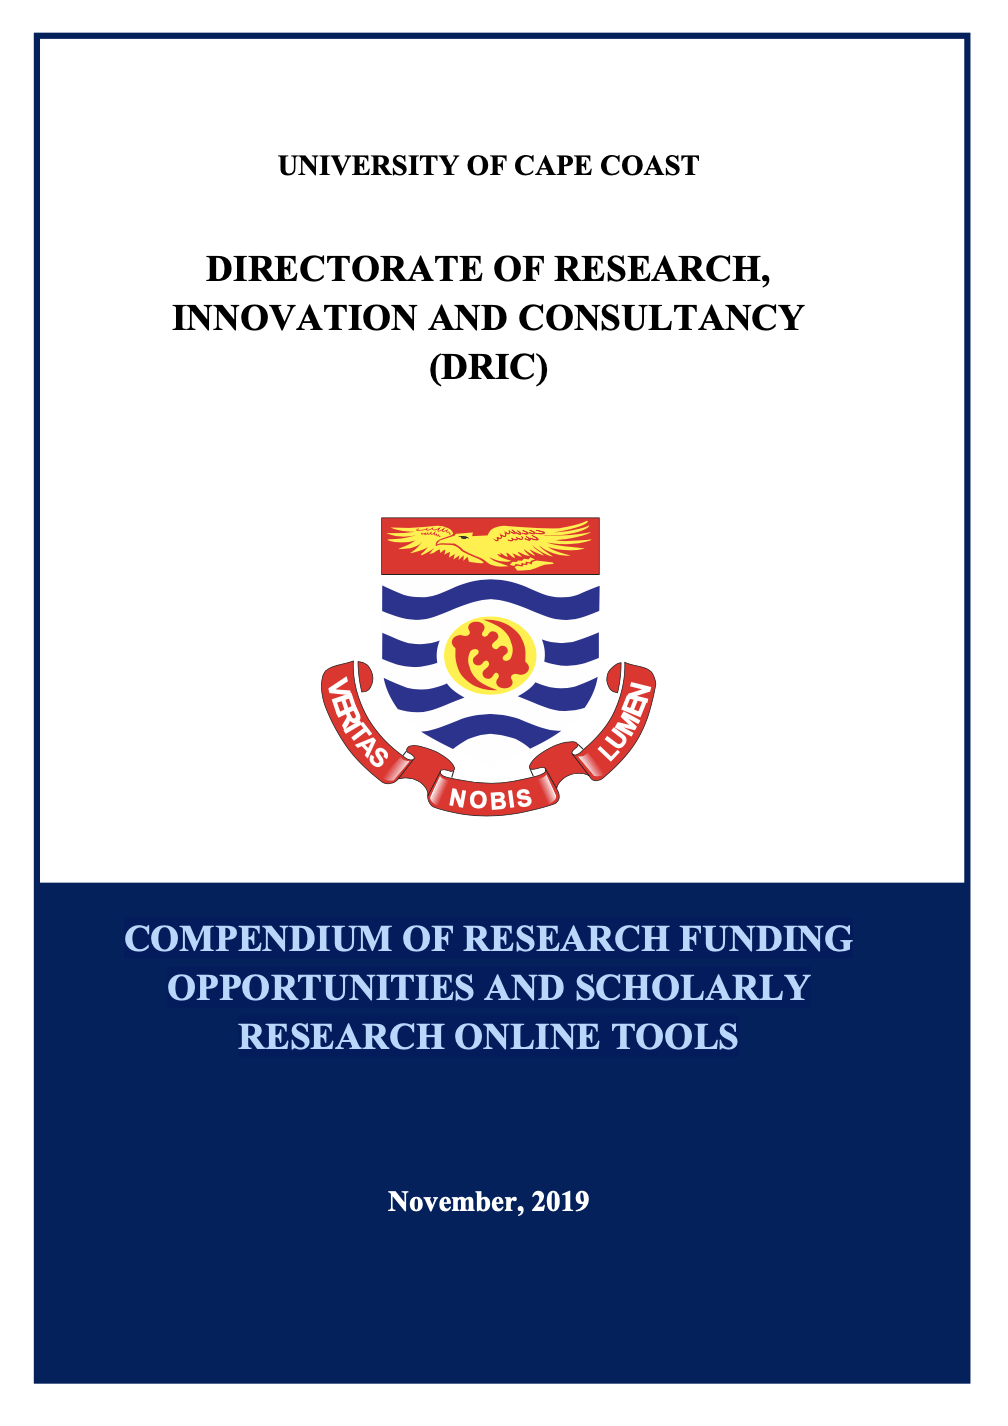 Compendium of research funding opportunities